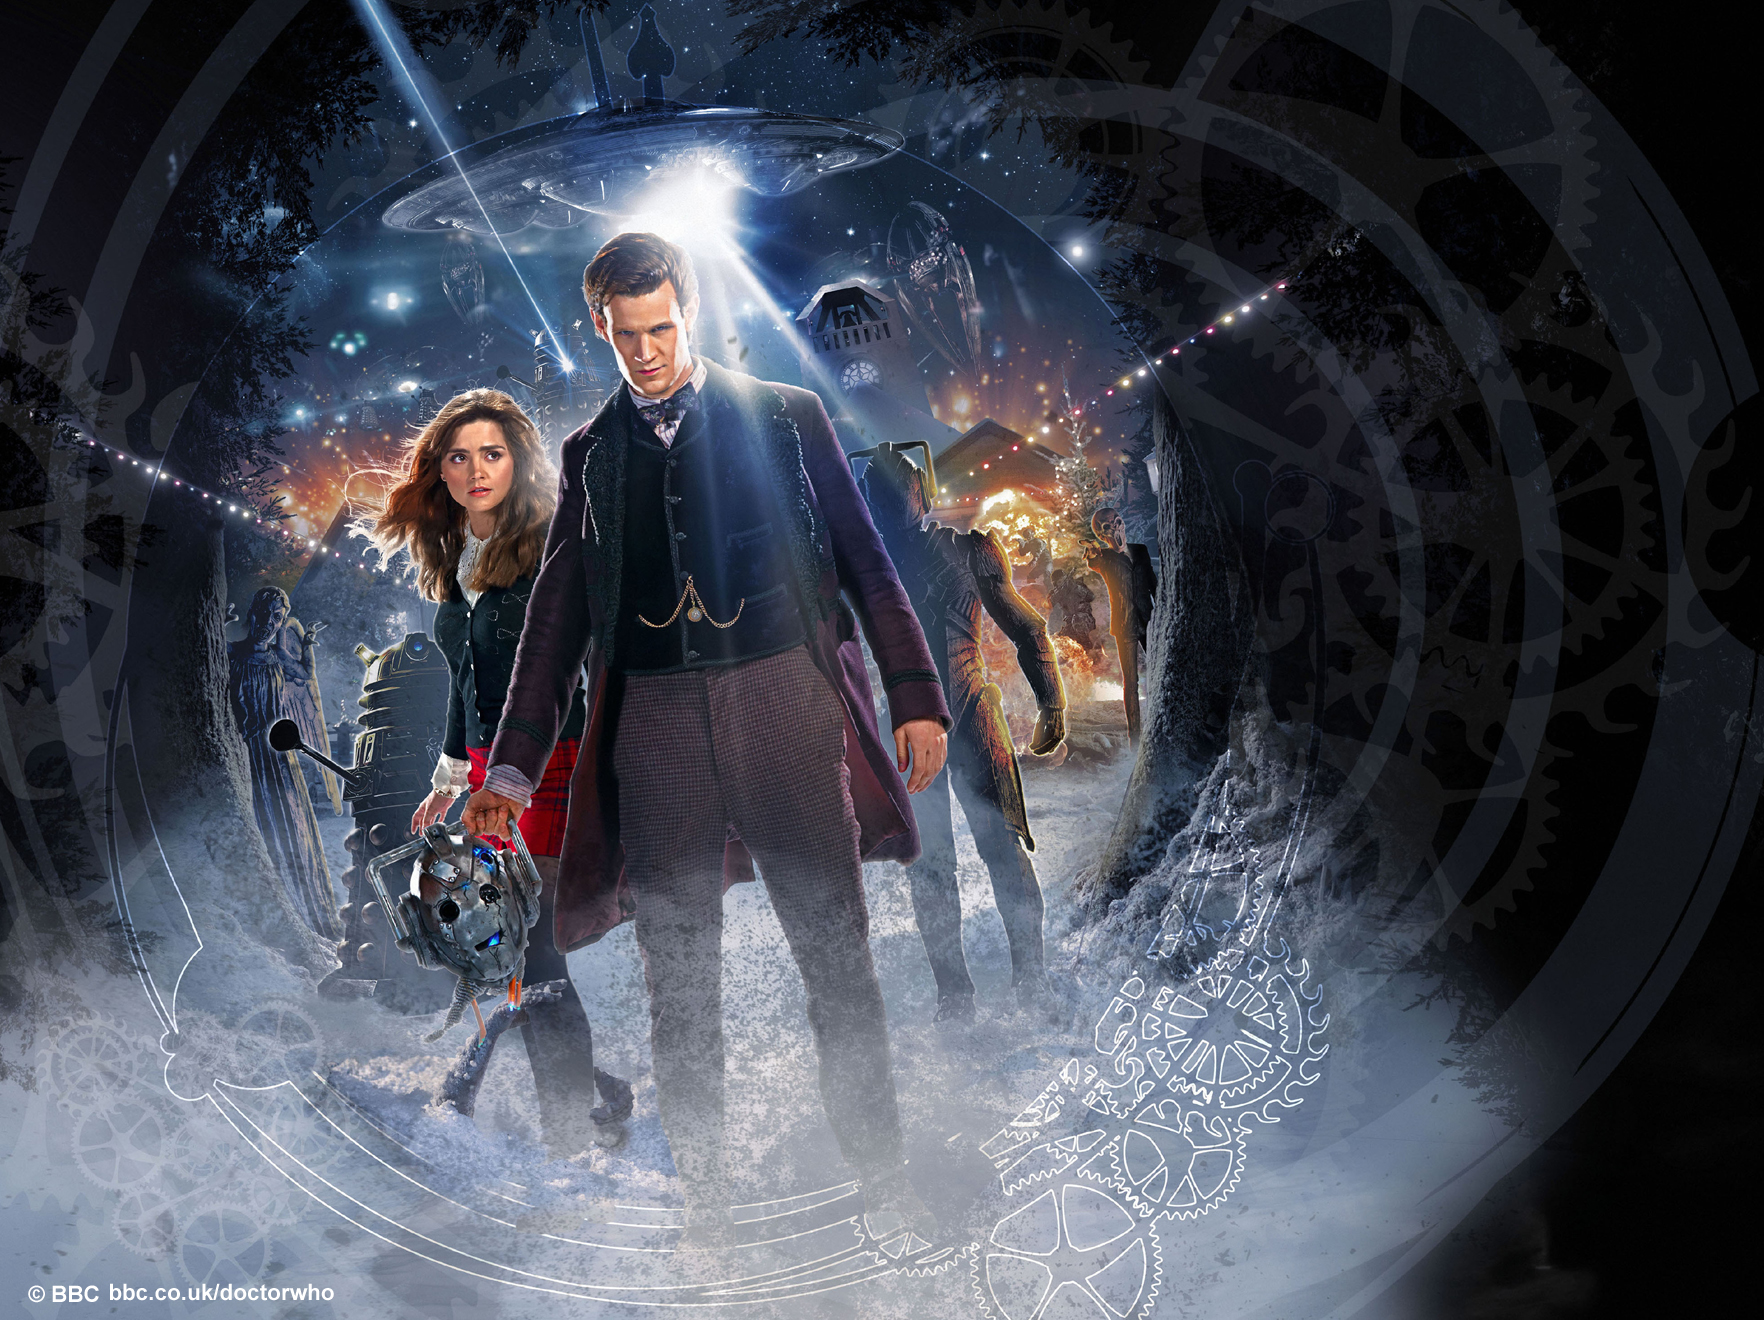 download 4x3 versions of these amazing doctor who wallpapers 1764x1320